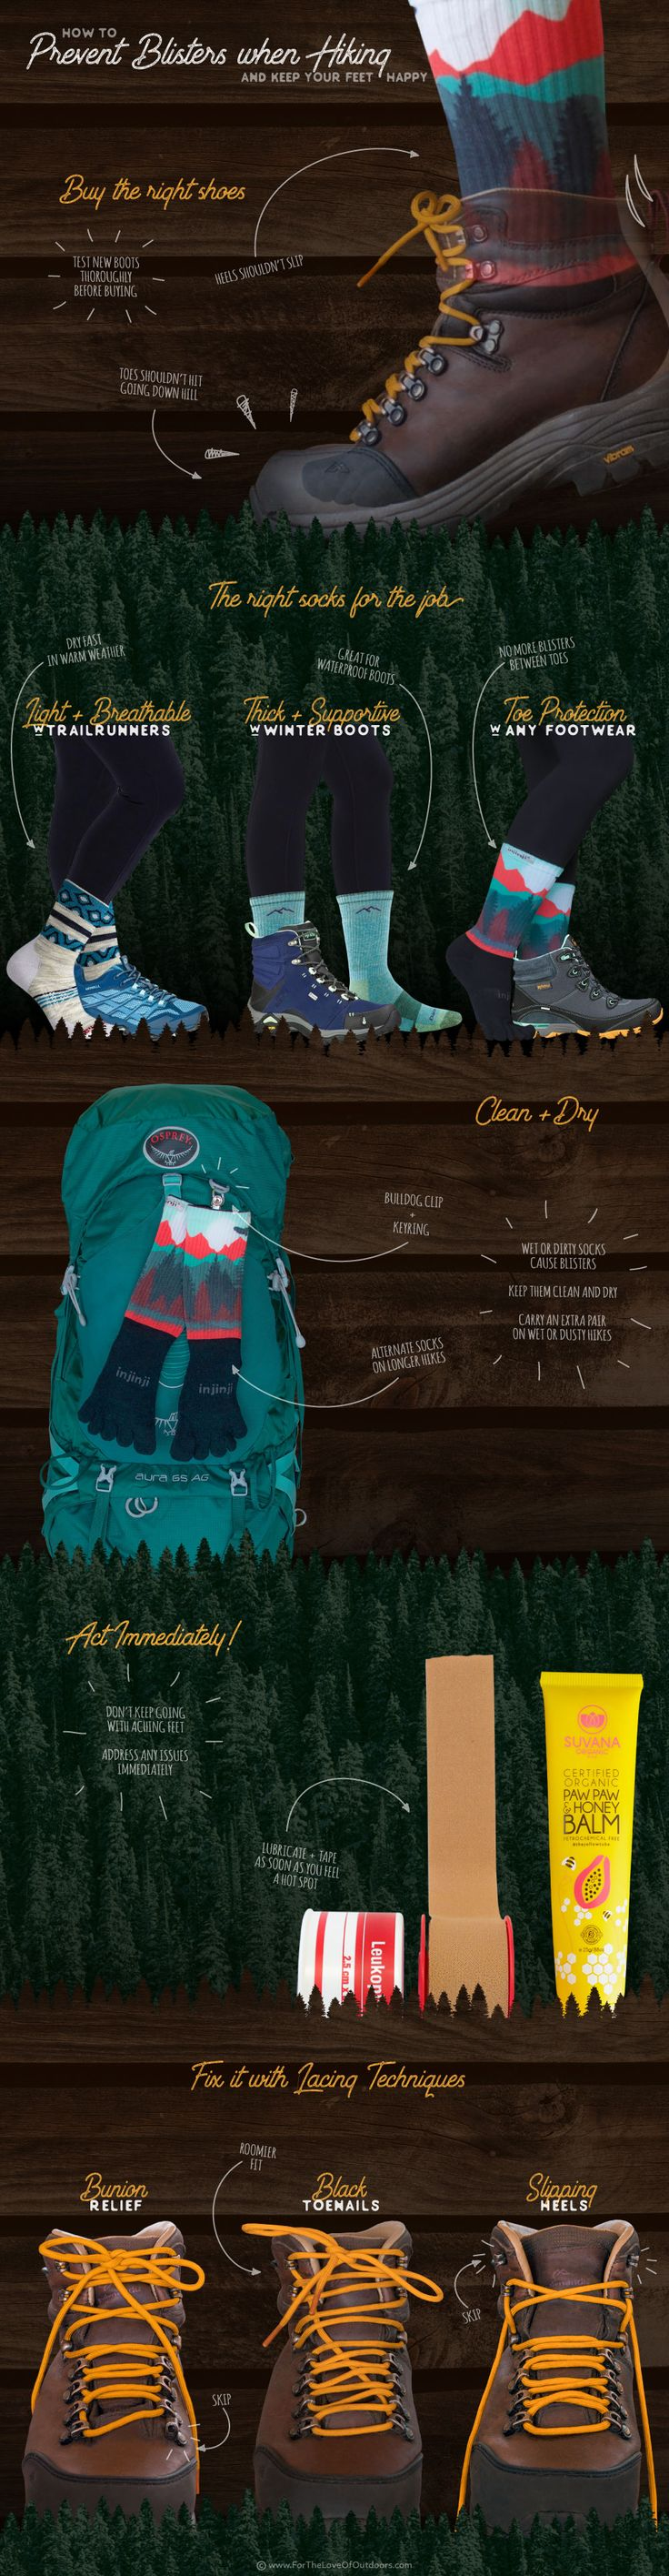 How to Prevent Blisters when Hiking - an Infographic Tutorial - Hiking Tips